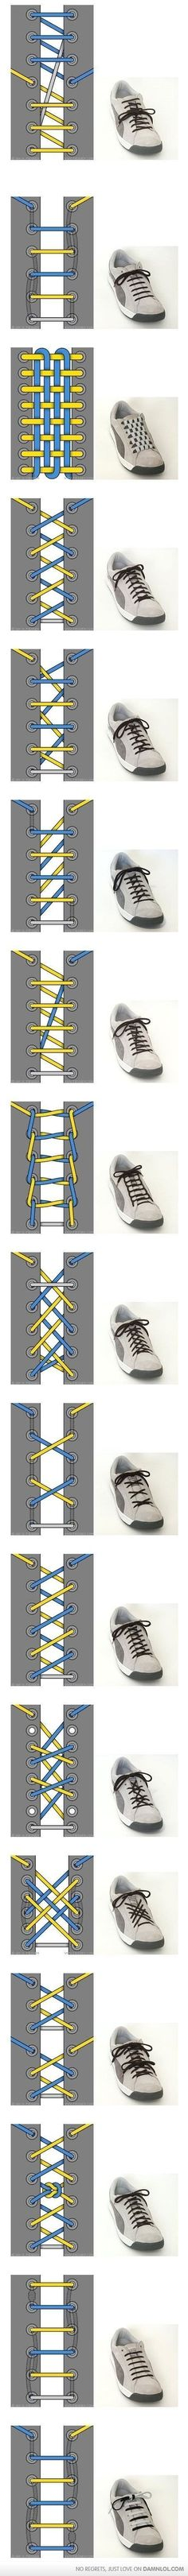 Cool Ways To Tie Your Shoe Laces ~ shoe lace patterns ~ Will have to remember this when the kids finally get shoes with laces. Your Shoes, Good To Know, Just In Case, Life Hacks, Mom Hacks, Creations, Geek Stuff, Mens Fashion, Boyish Fashion